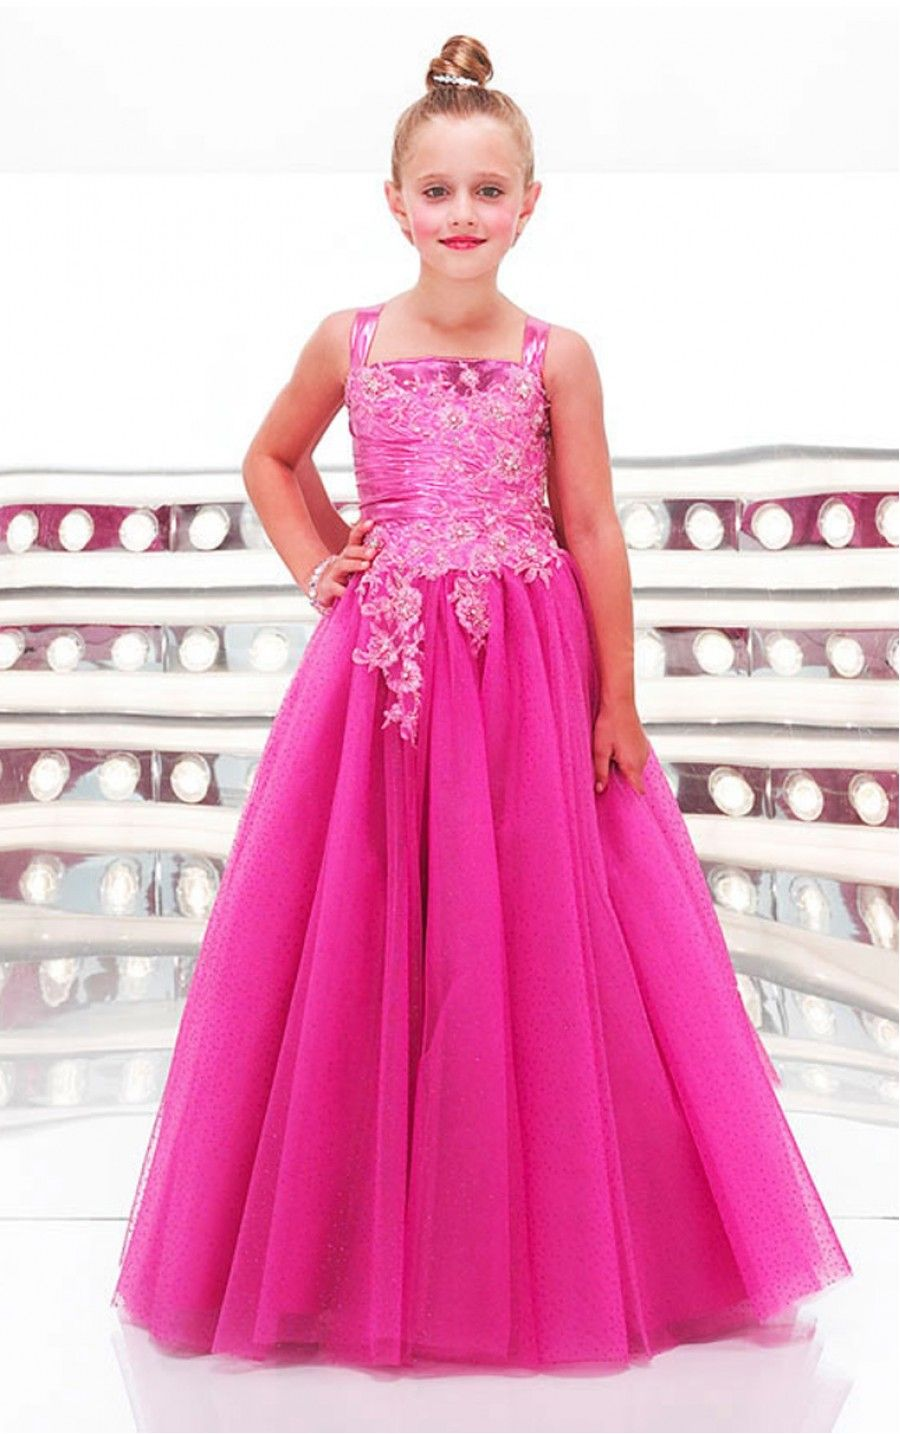 Fuchsia Princess Floor-length Shoulder Straps Dress [Dresses 9273 ...